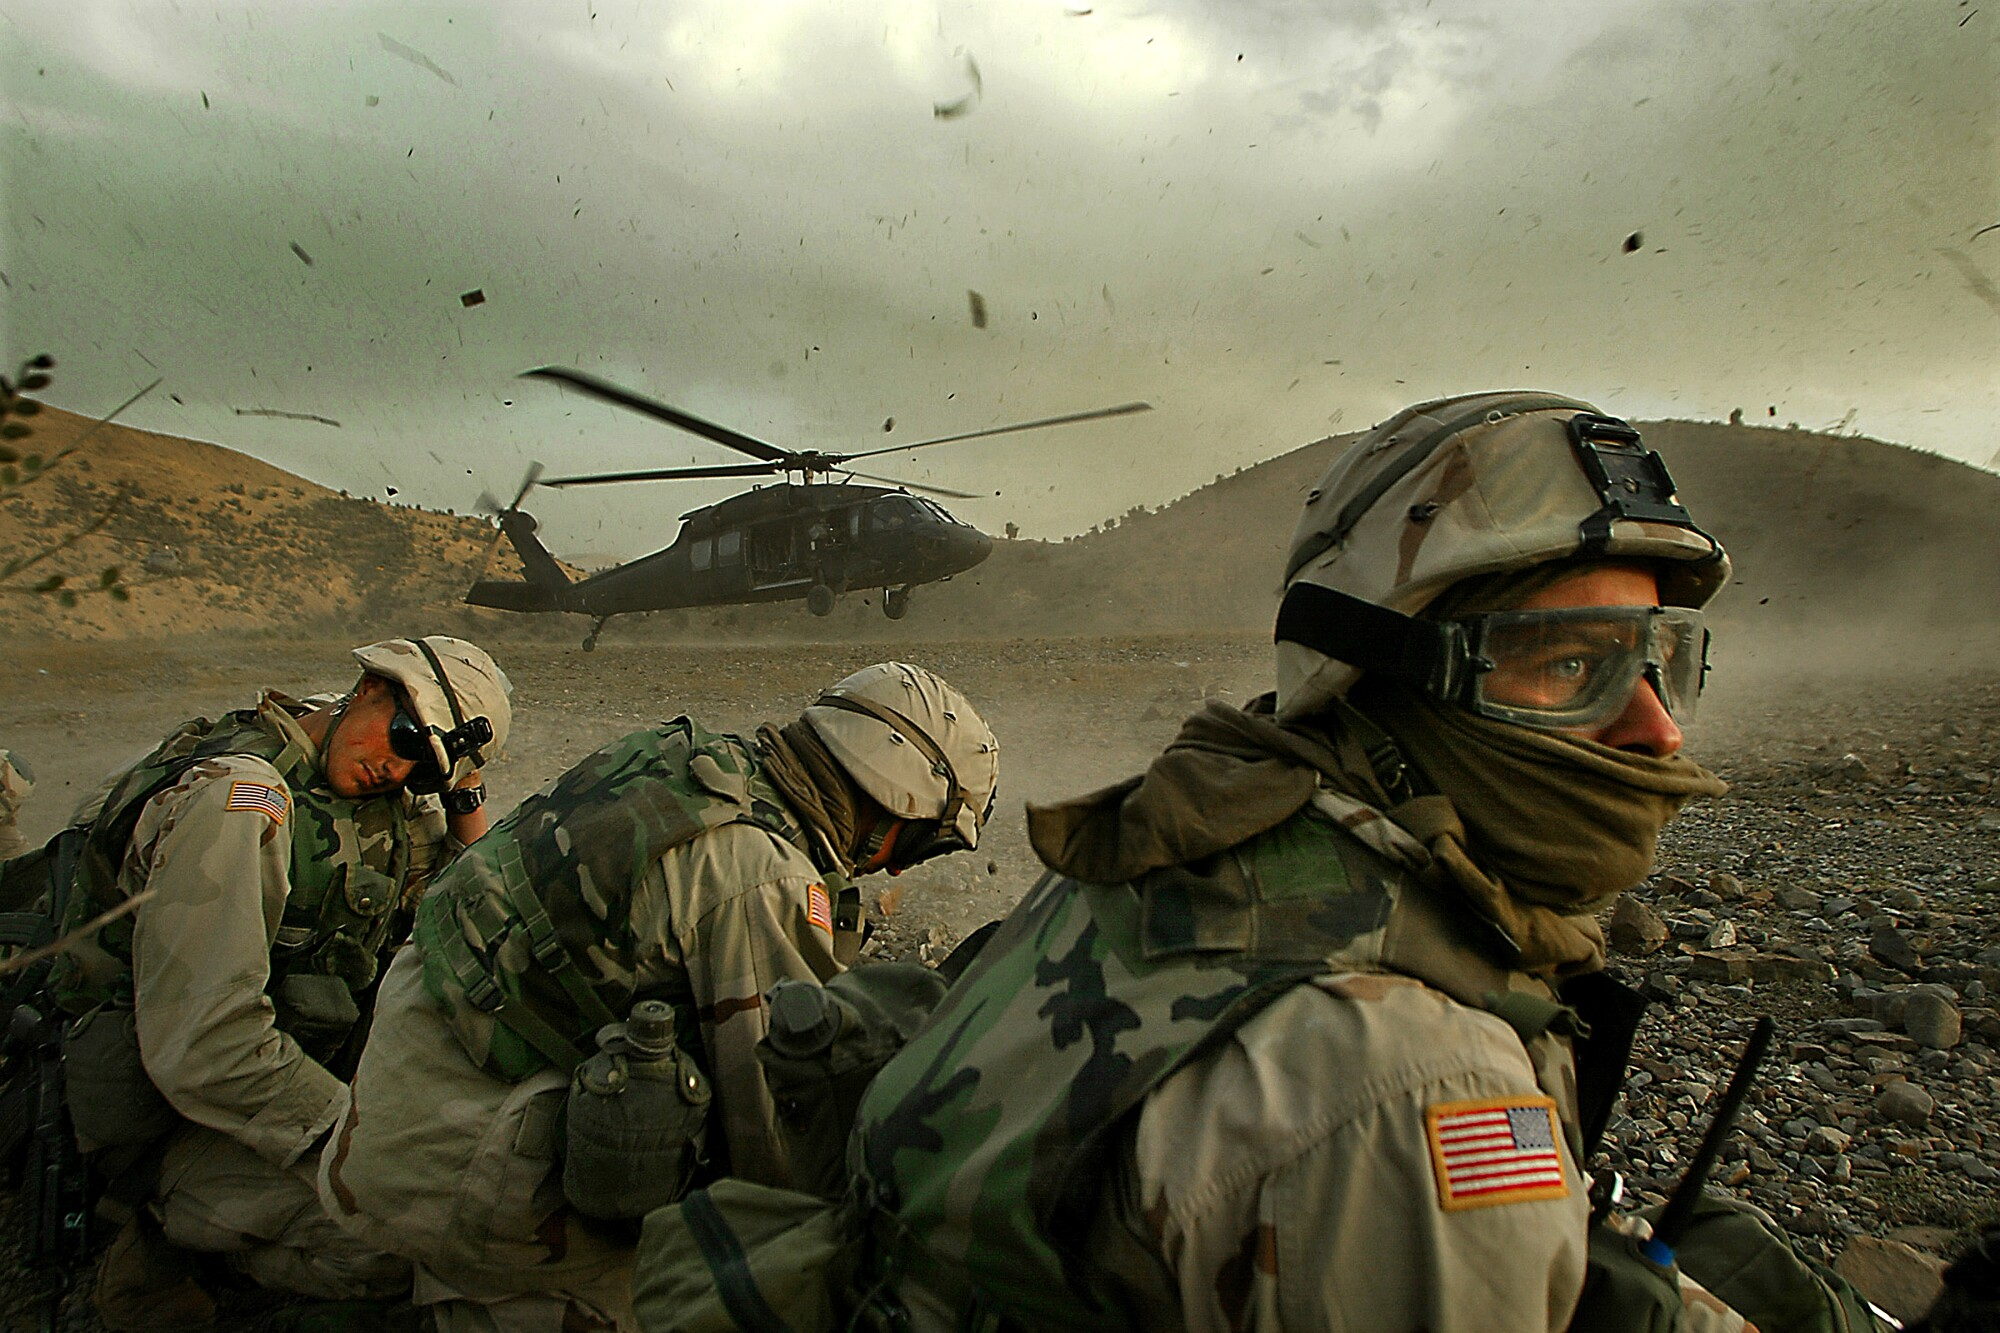 Soldiers turn their heads away from a landing helicopter kicking up dust and debris